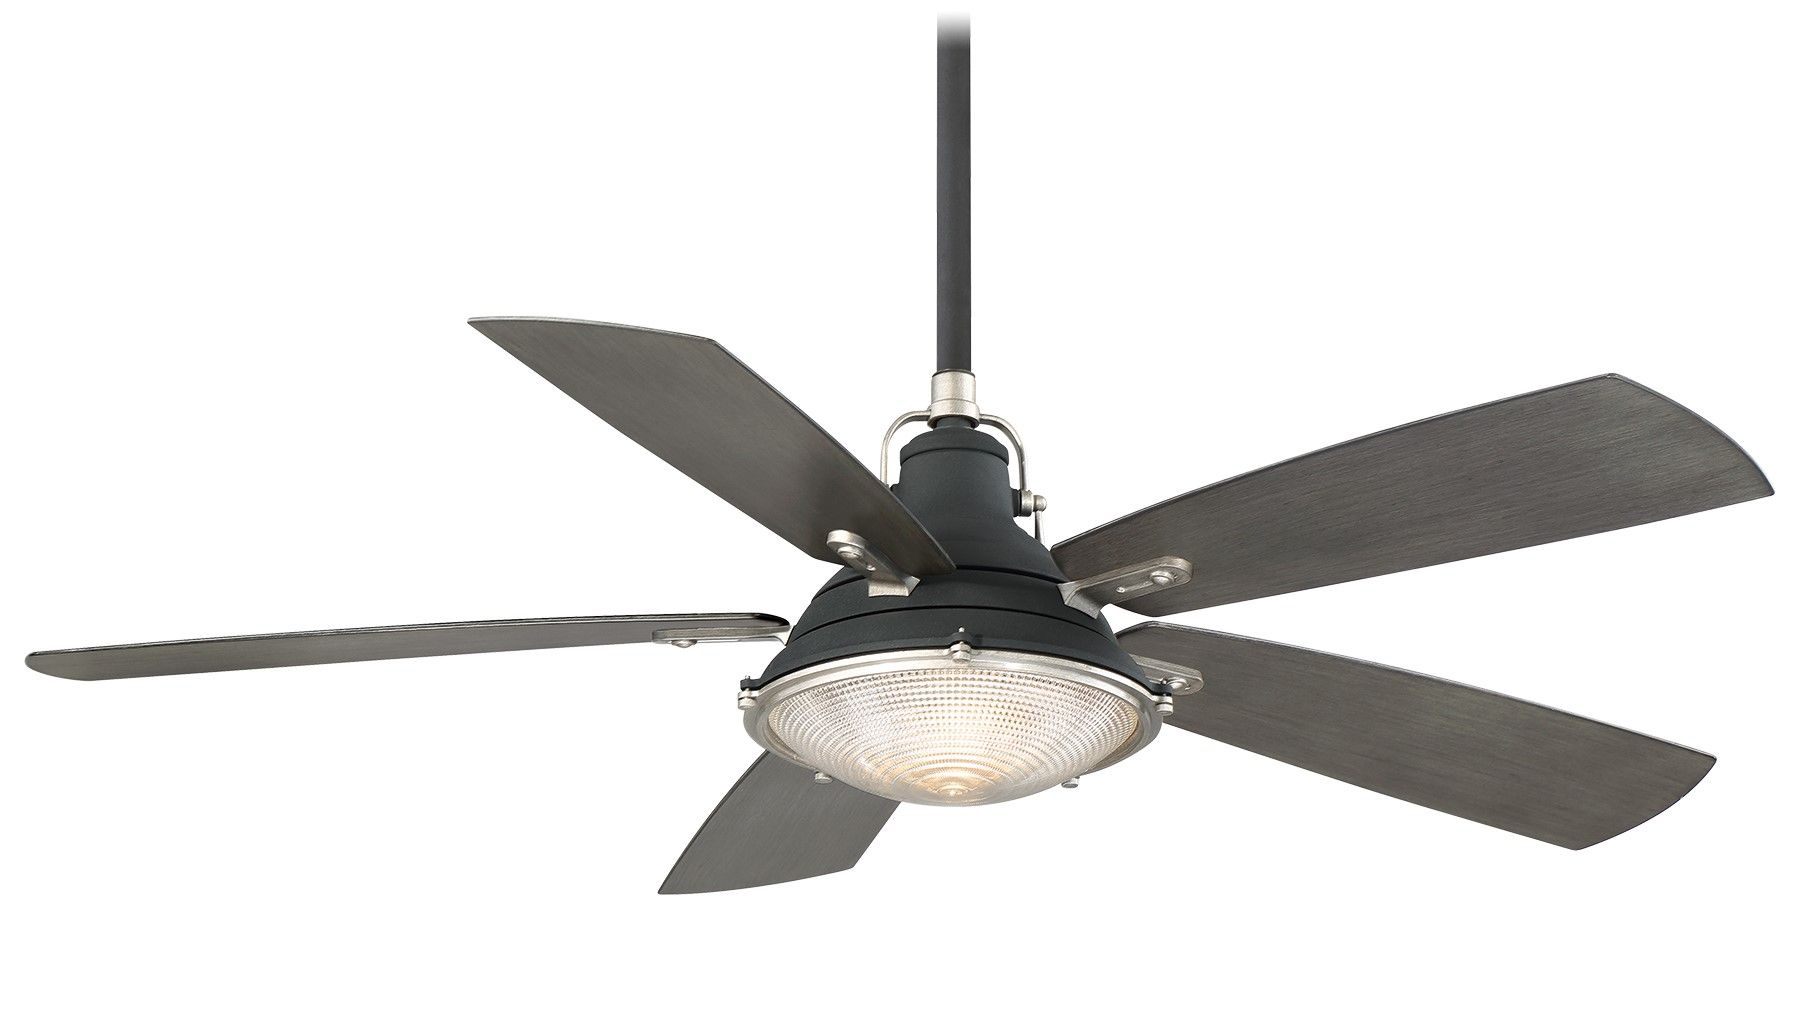 Phenomenal Minka Aire Groton 56 Indoor Outdoor Ceiling Fan In Sand Black And Weathered Steel Download Free Architecture Designs Scobabritishbridgeorg